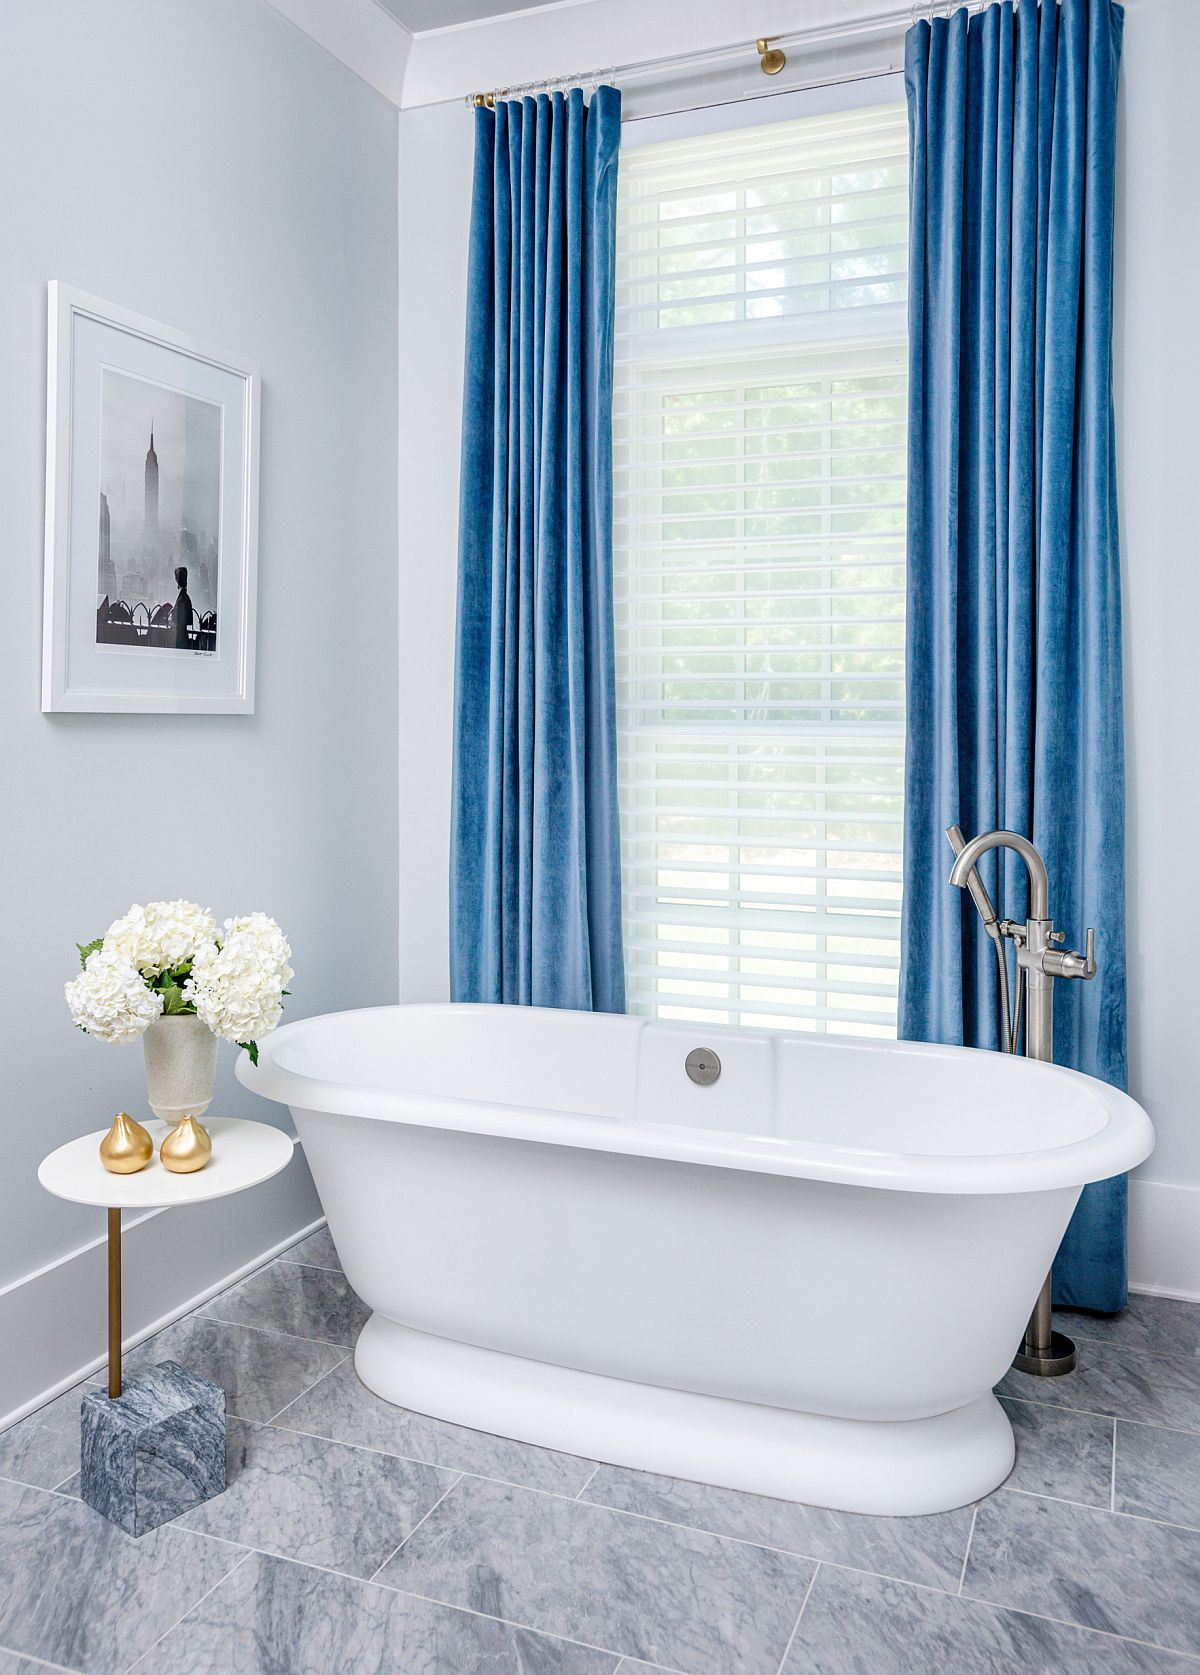 Drapes in blue add color to this bathroom in white with a modern minimal look